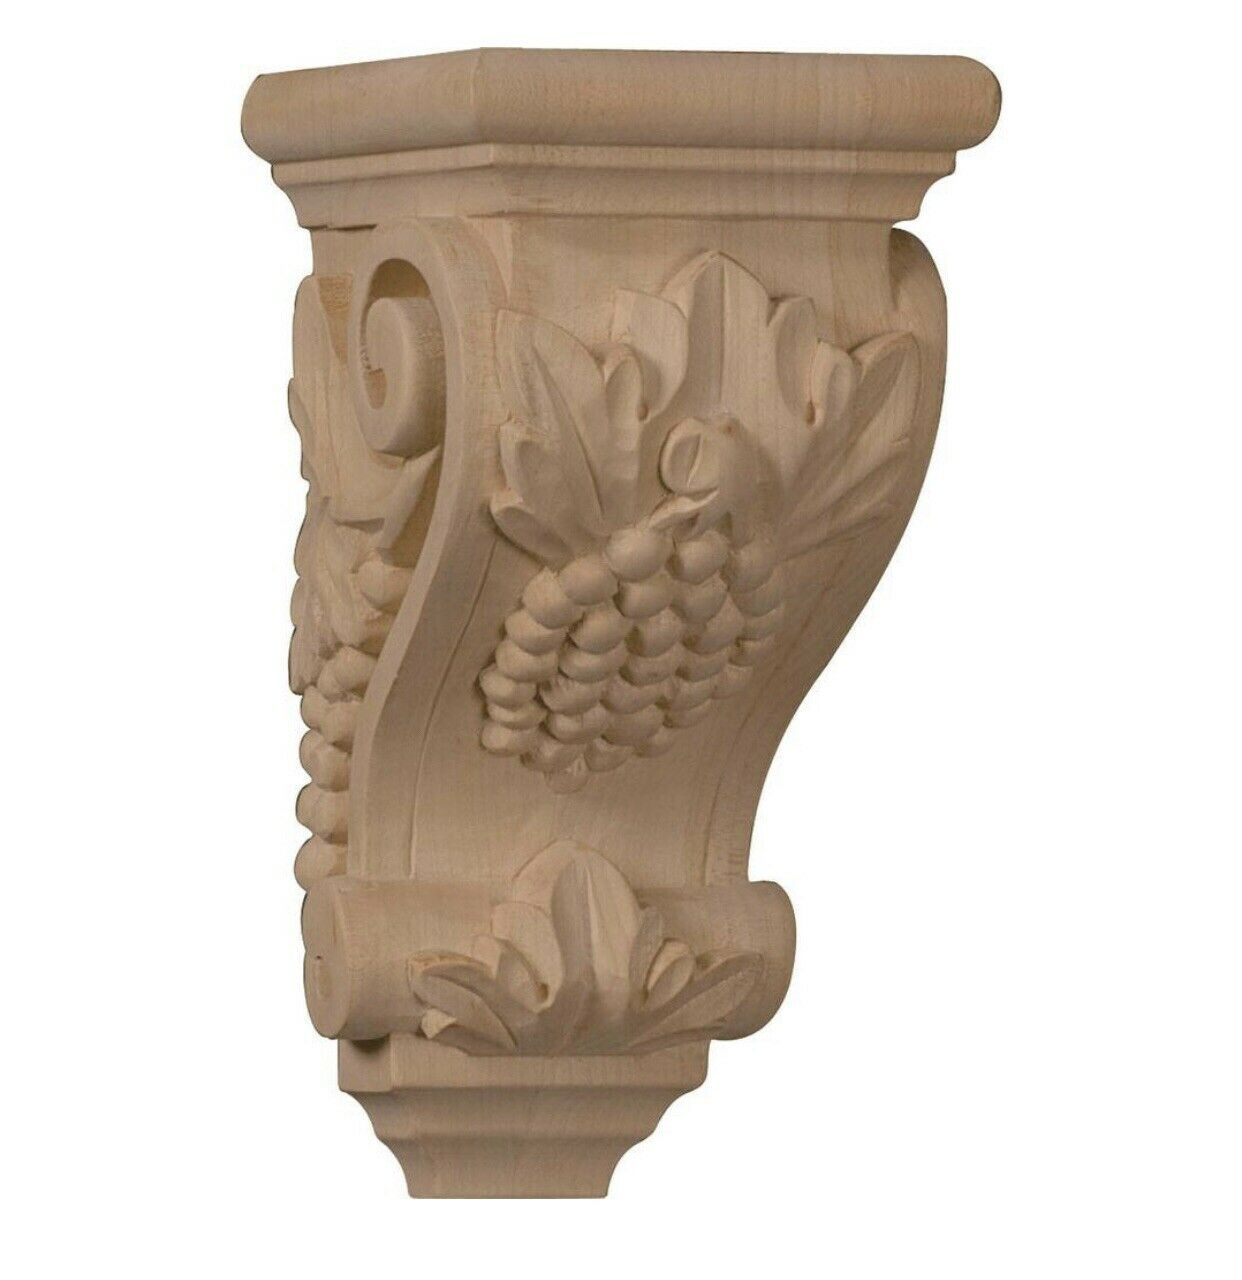 3 1 2 W x 4 D x 7 H Small Grape Corbel, Mahogany